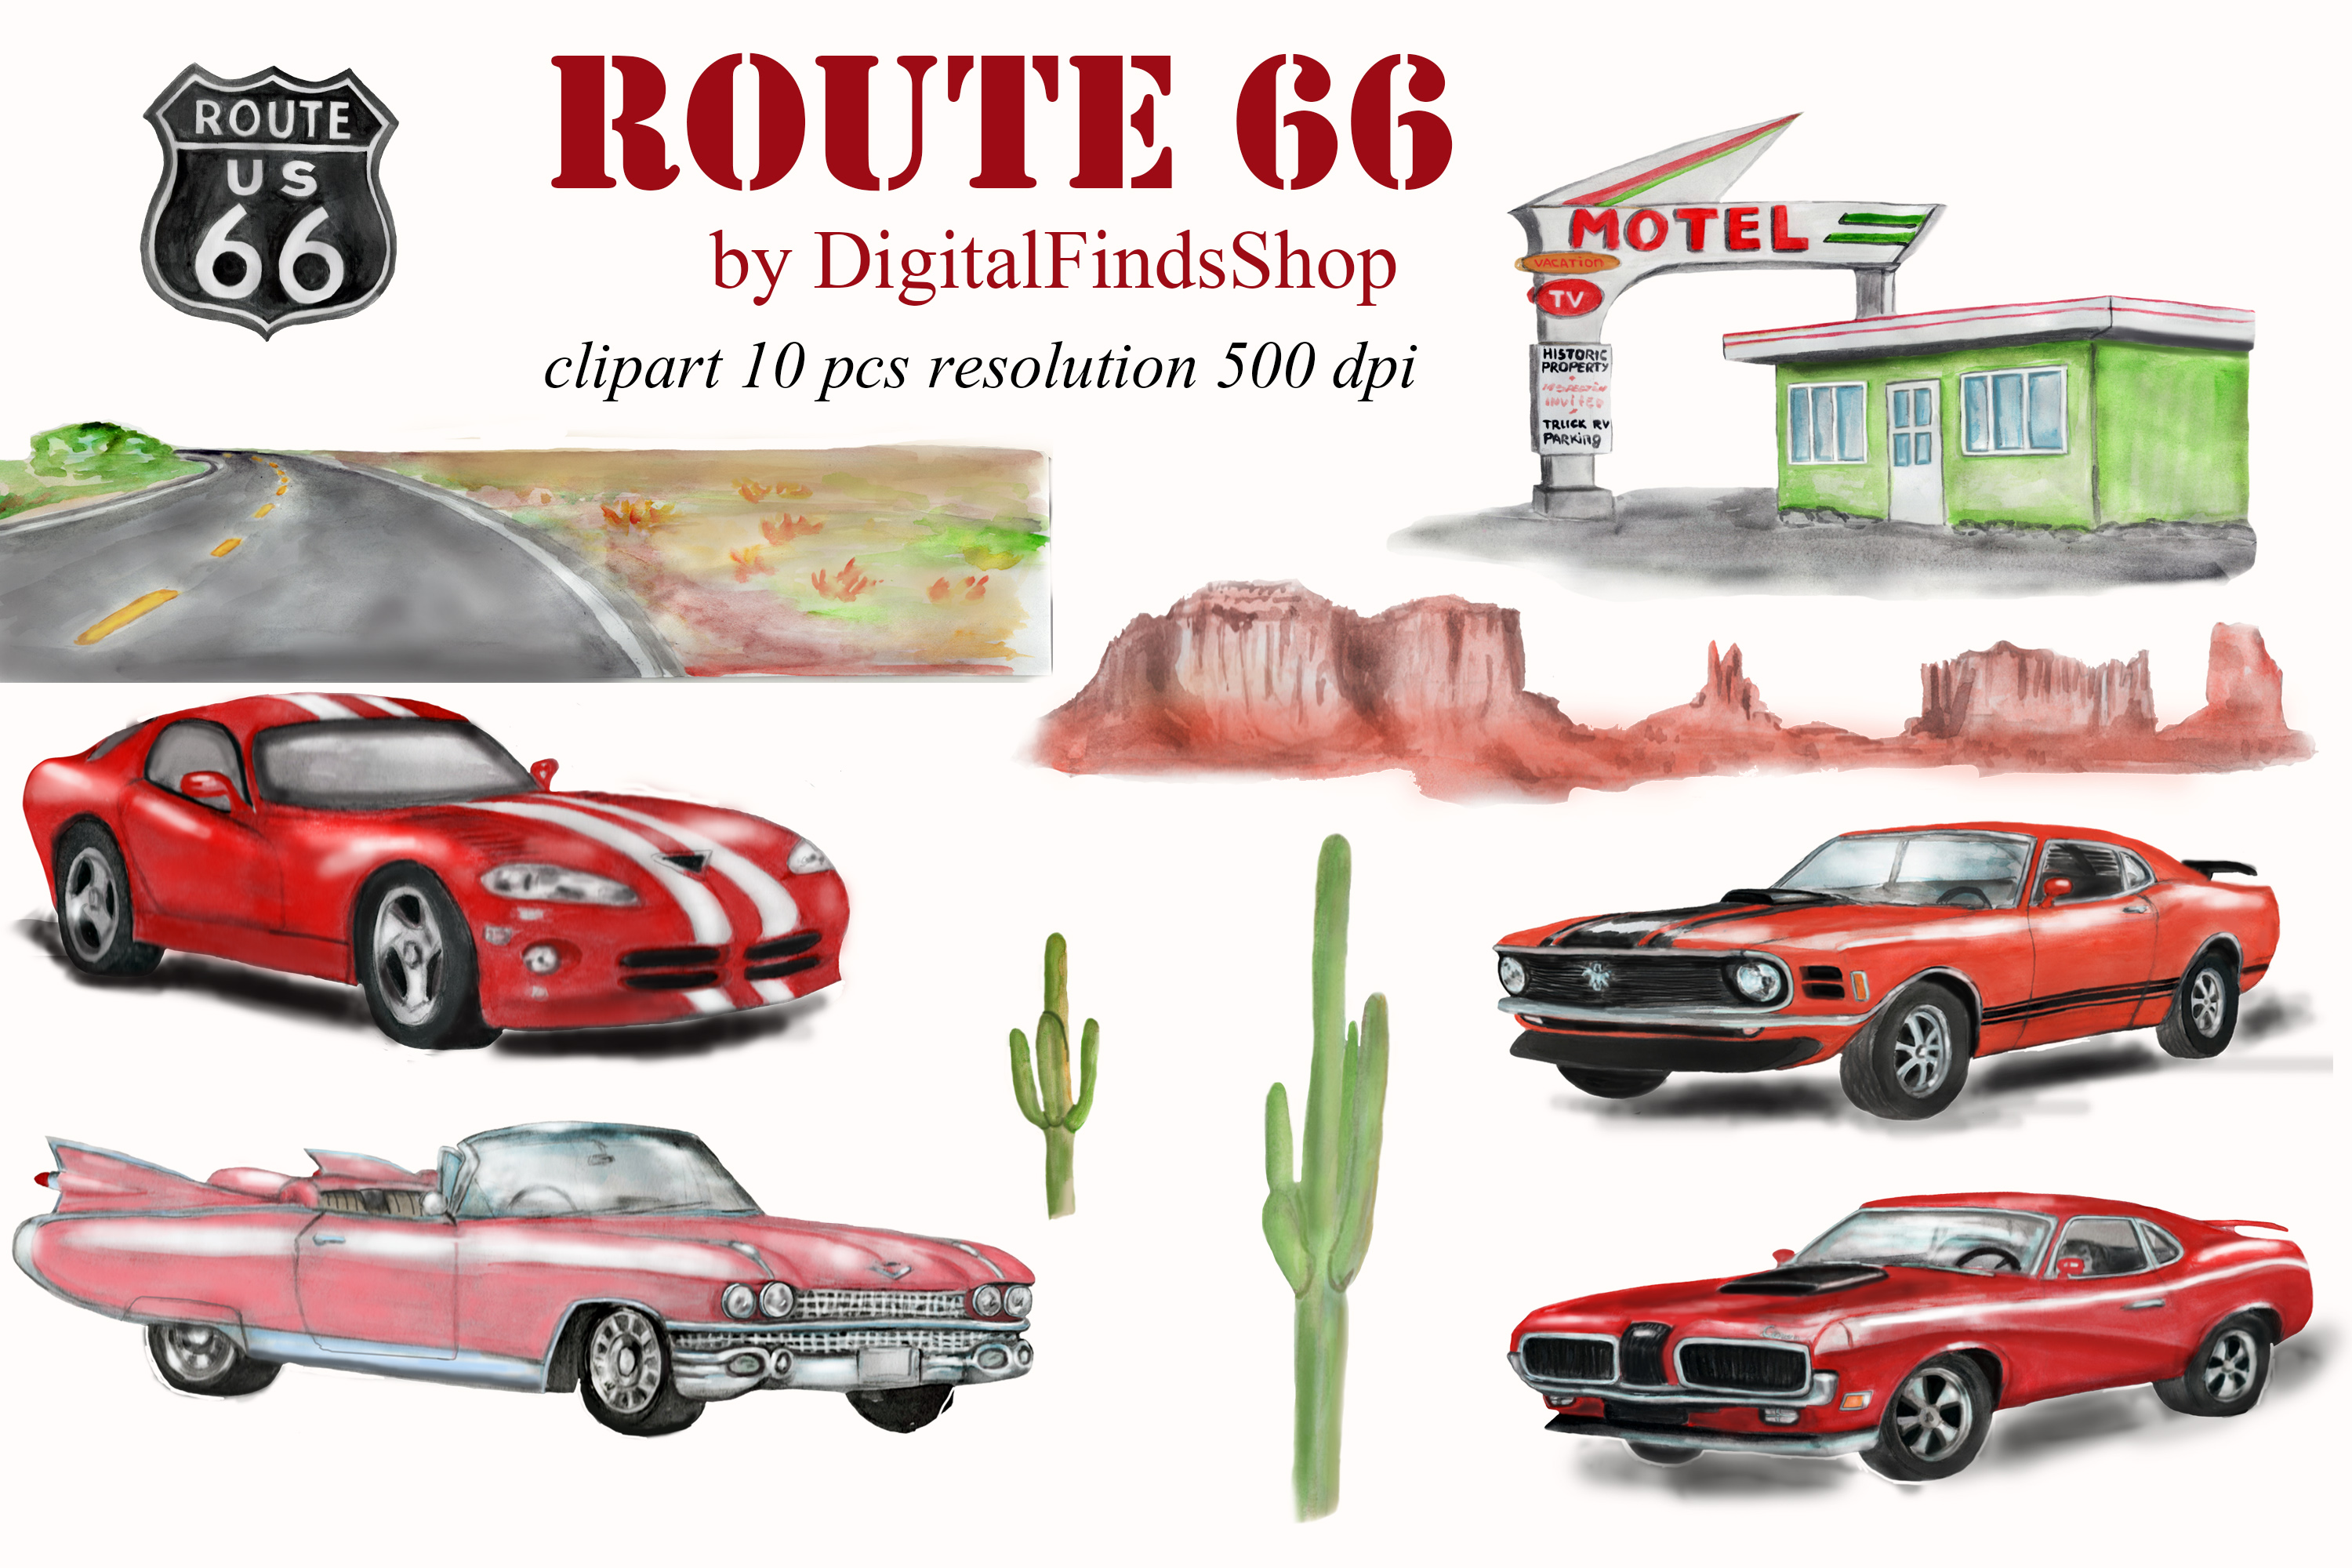 American car clipart, Route 66, vehicle watercolor clipart example image 2